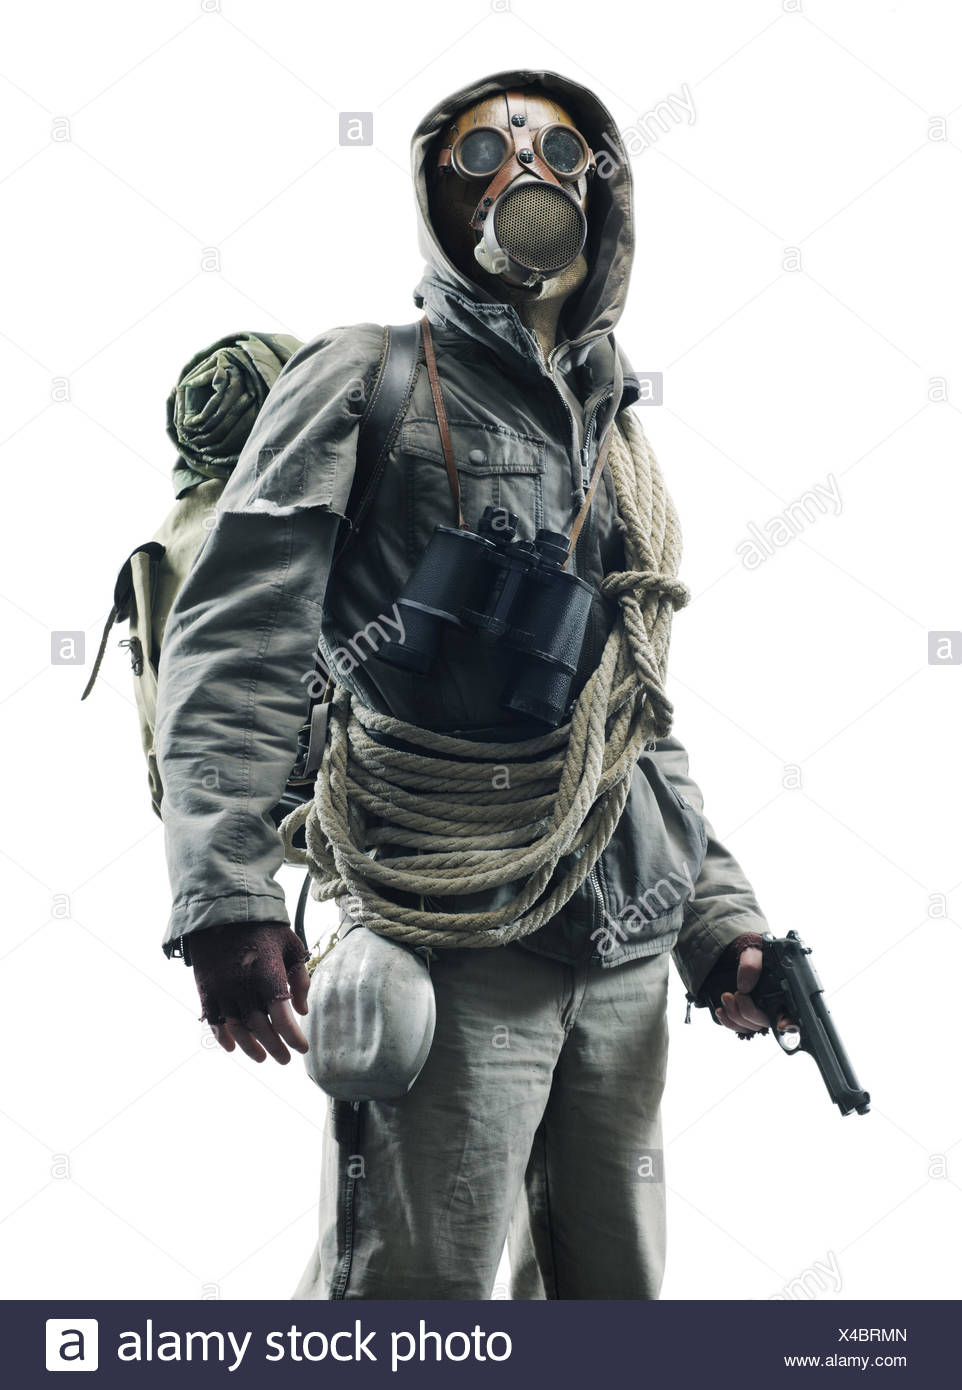 Post apocalyptic survivor in gas mask on white background - Stock Image